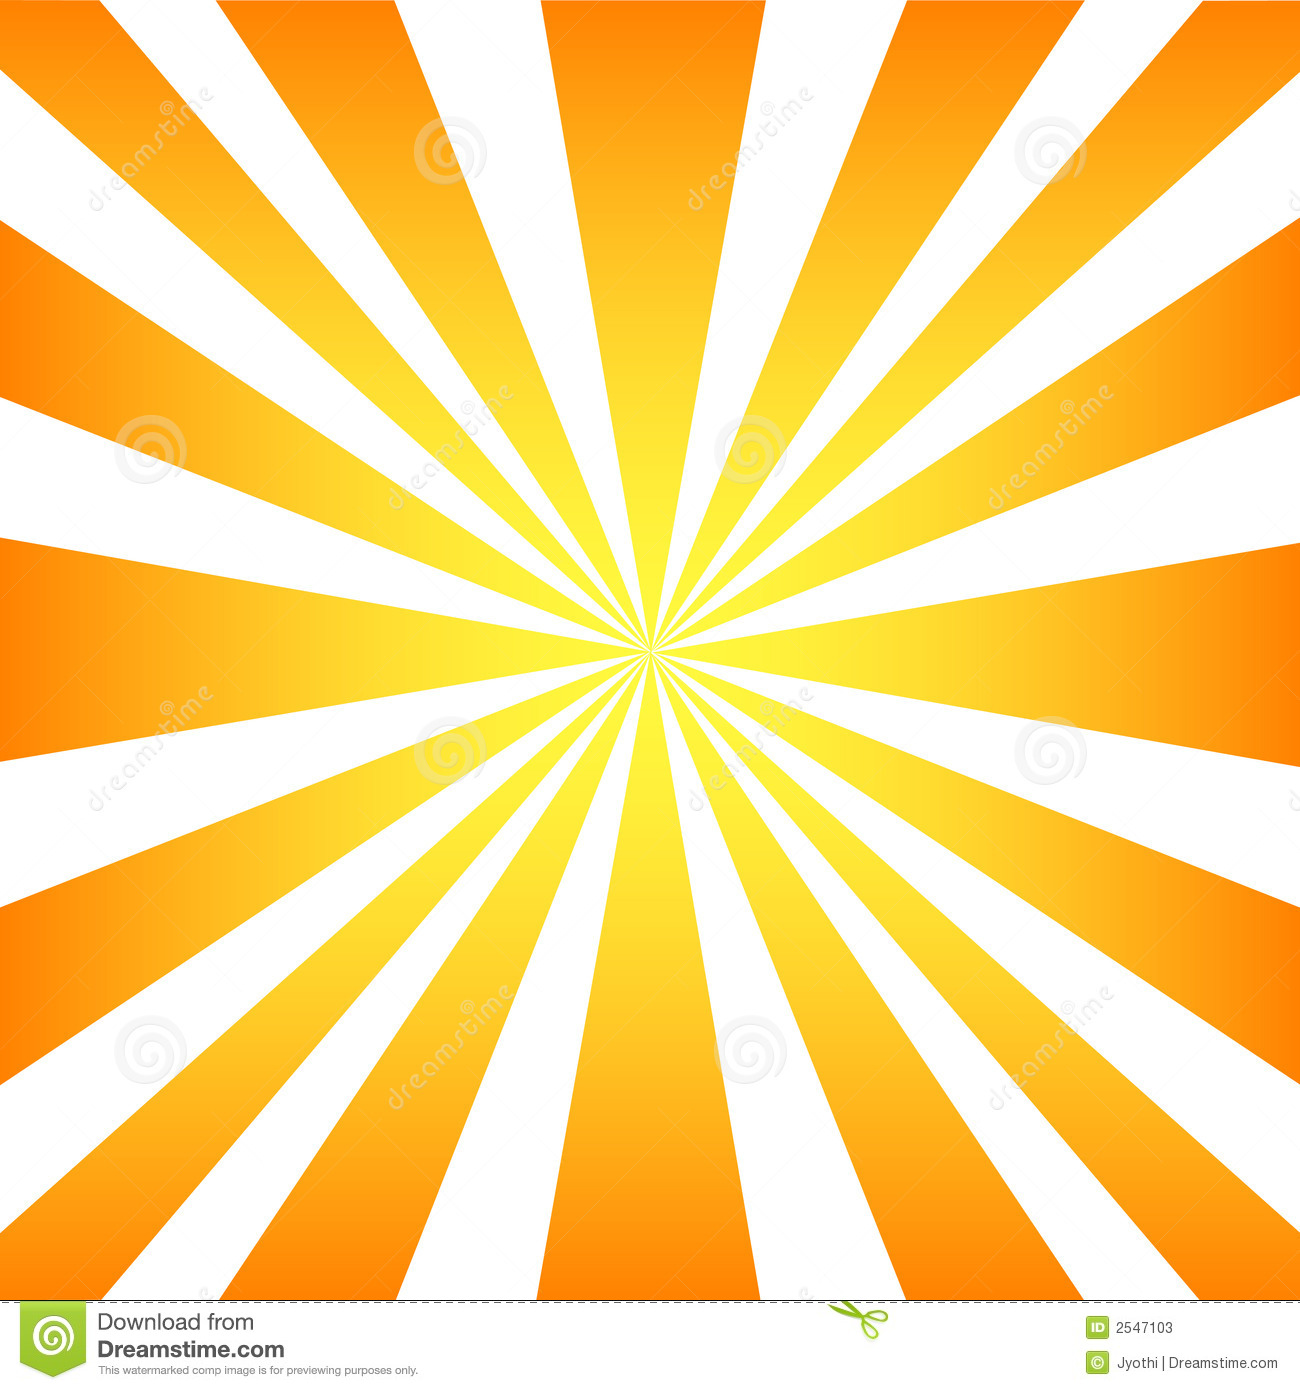 sun rays clipart png 2 clipart station rh clipartstation com sun rays clip art free sun rays clipart png